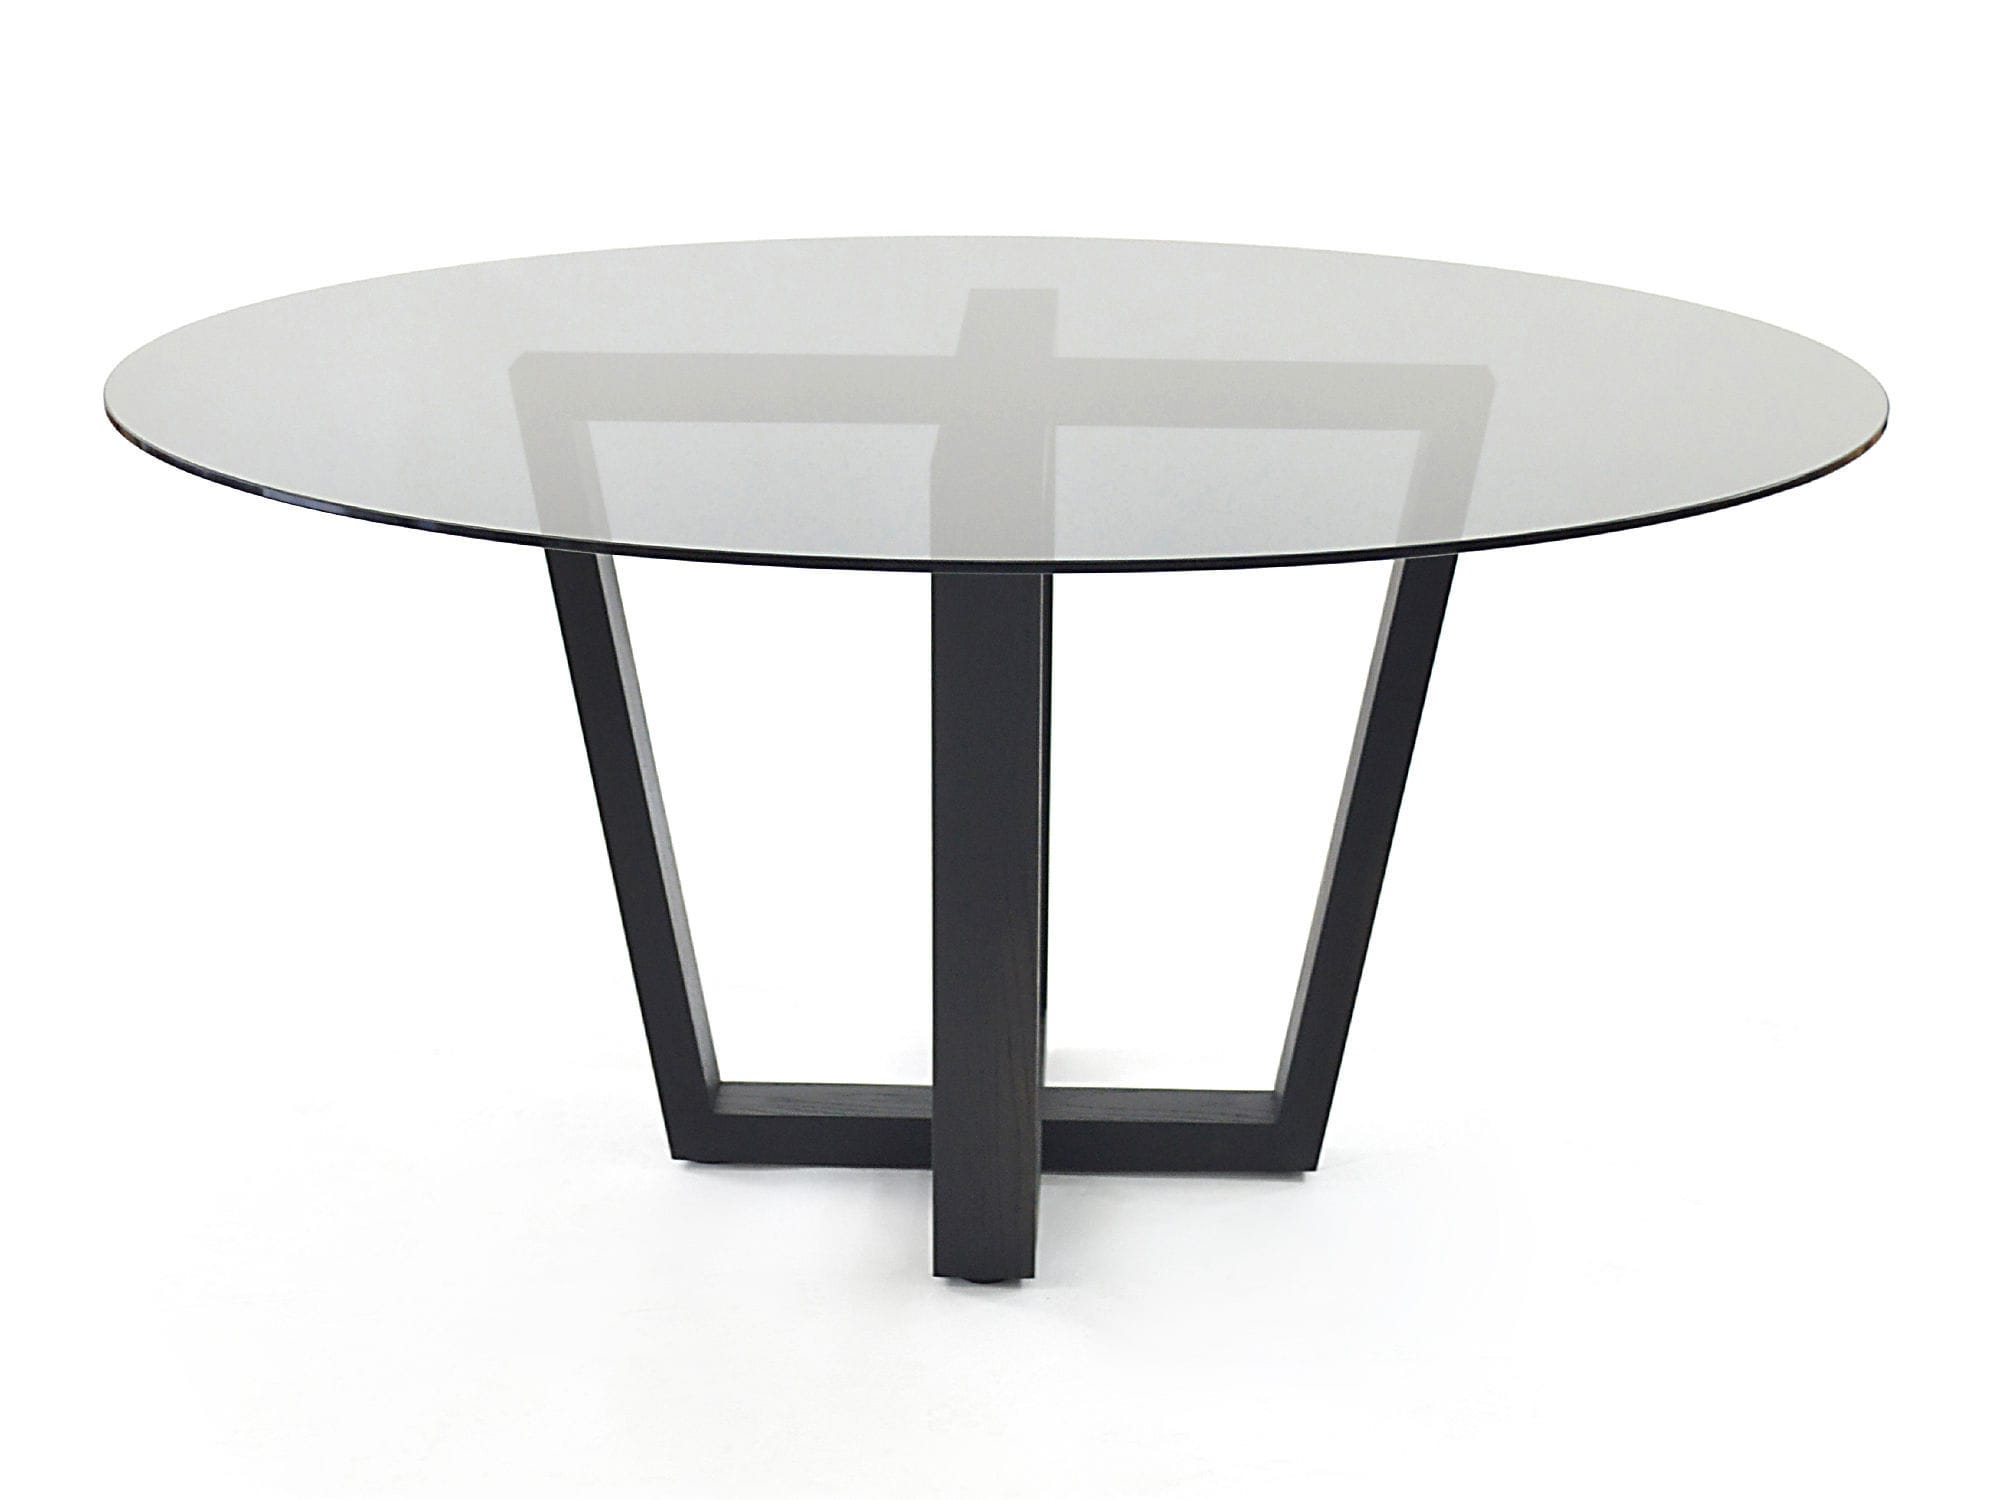 Contemporary Dining Table / Wooden / Glass / Round – Smoked With Well Liked Smoked Oval Glasstop Dining Tables (View 2 of 25)